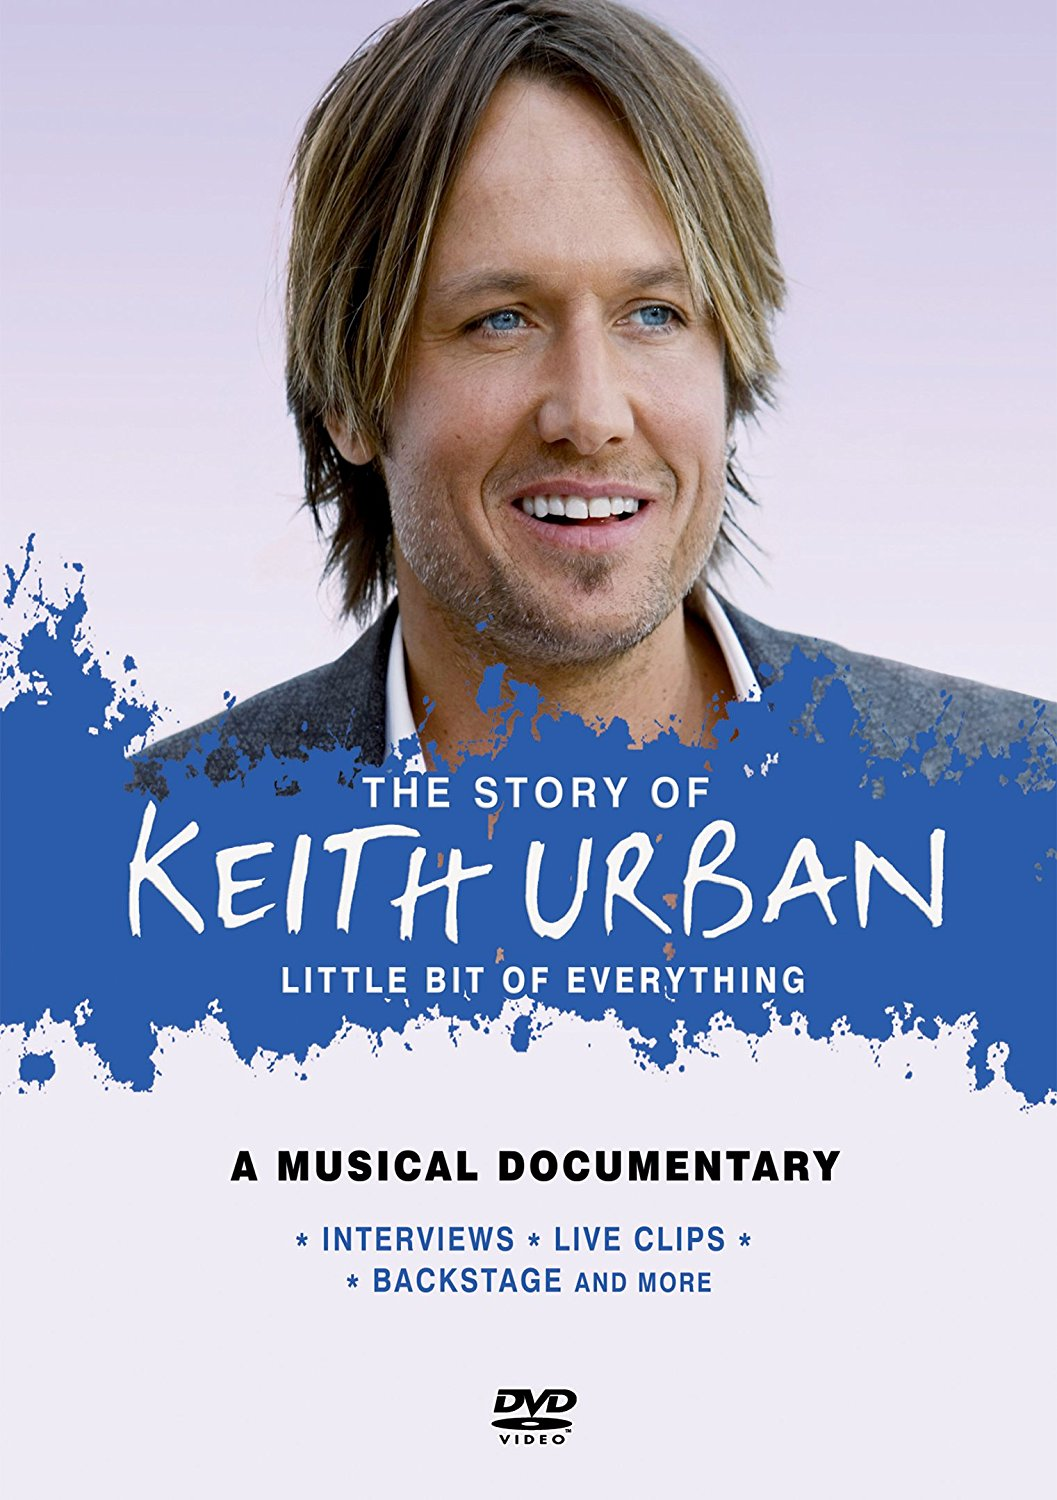 Keith Urban: Little Bit of Everything